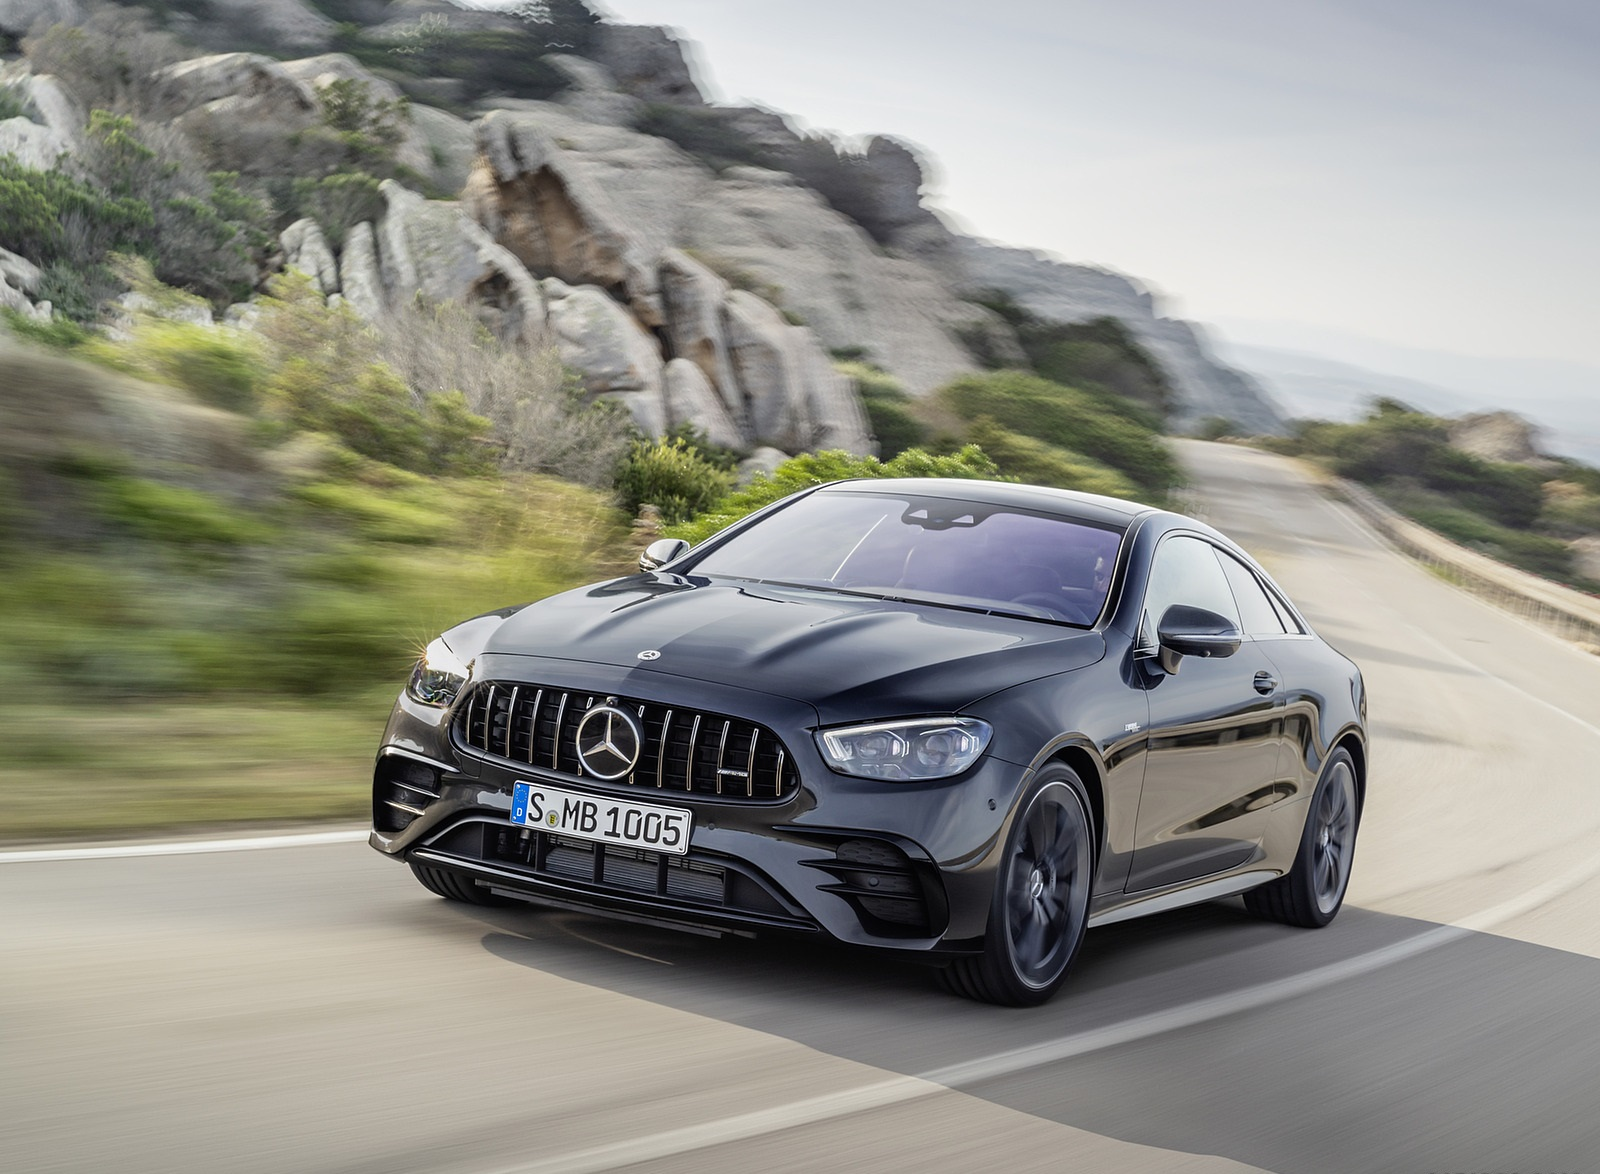 2021 Mercedes-AMG E 53 Coupe (Color: Graphite Grey Metallic) Front Three-Quarter Wallpapers (1)